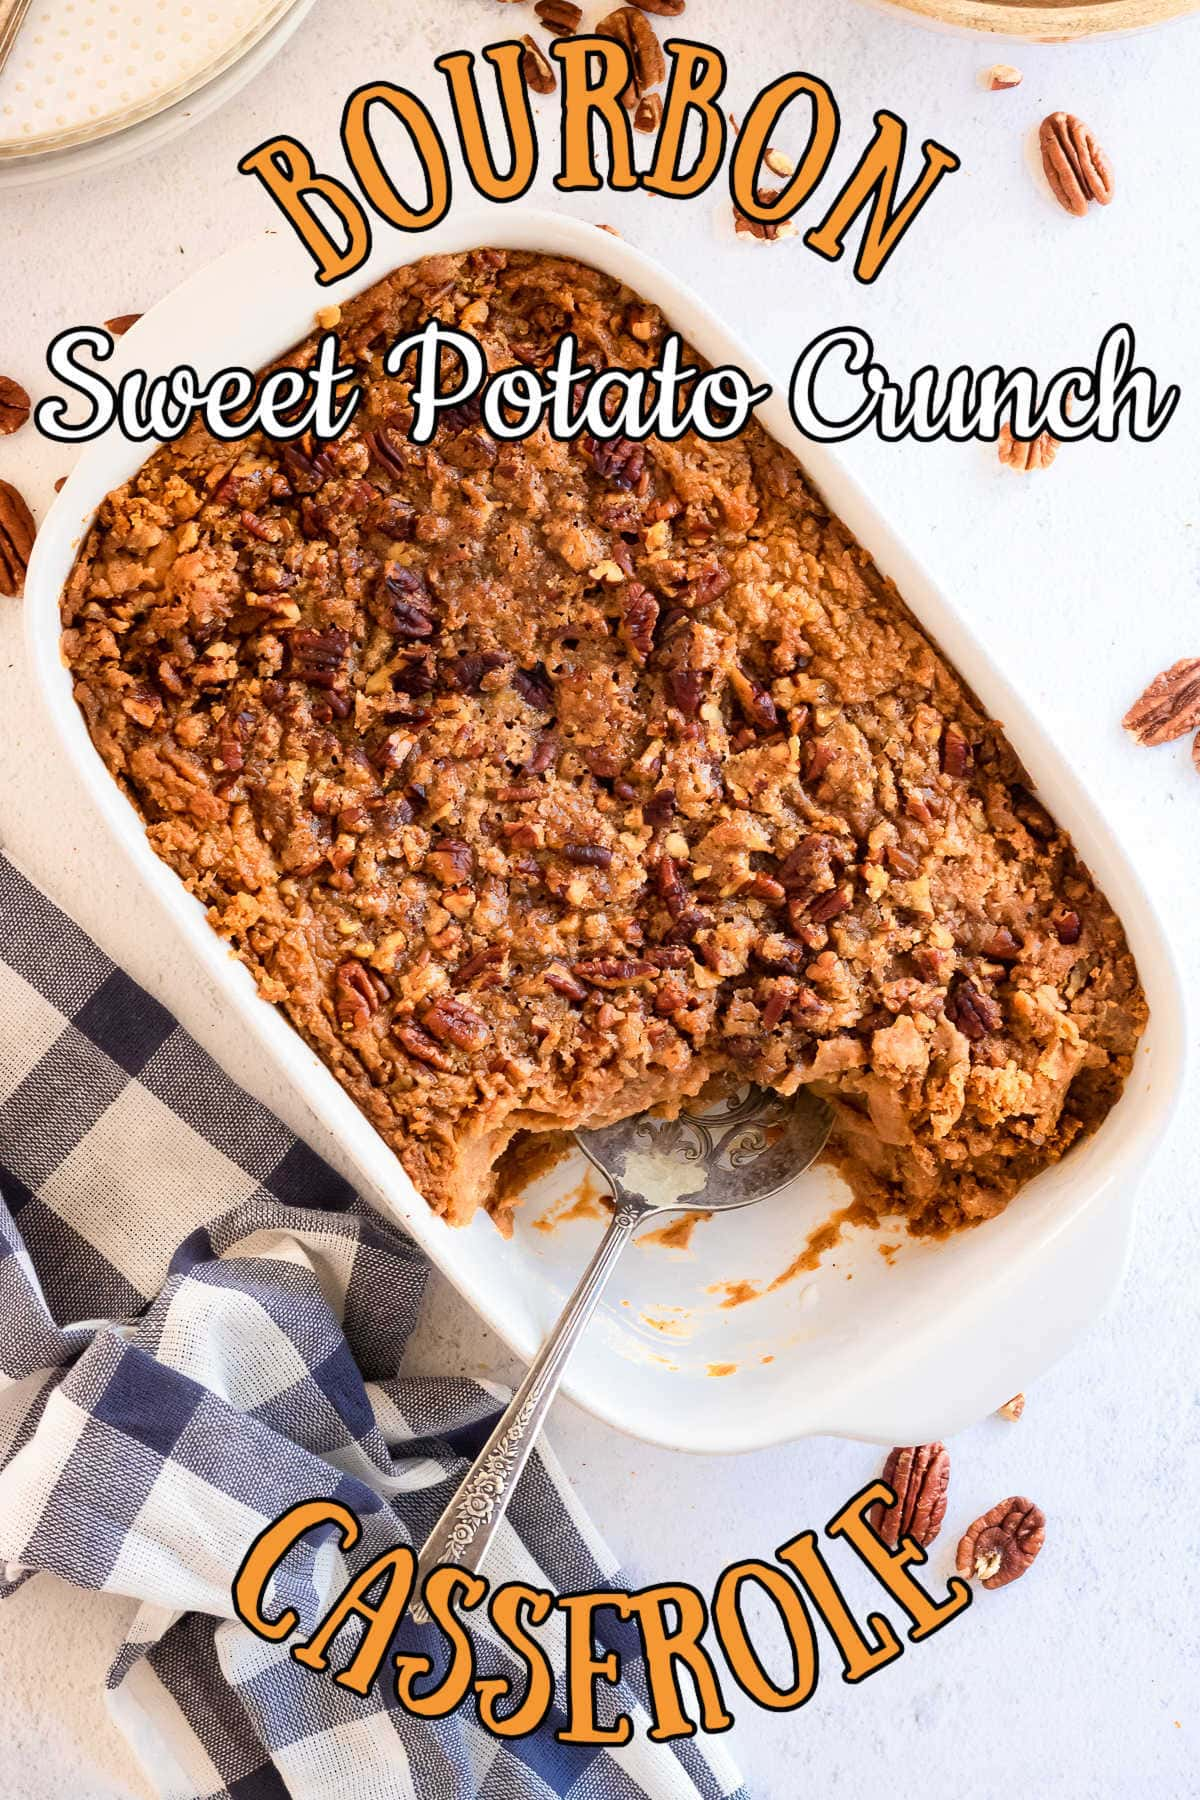 Overhead view of sweet potato casserole with title text overlay.